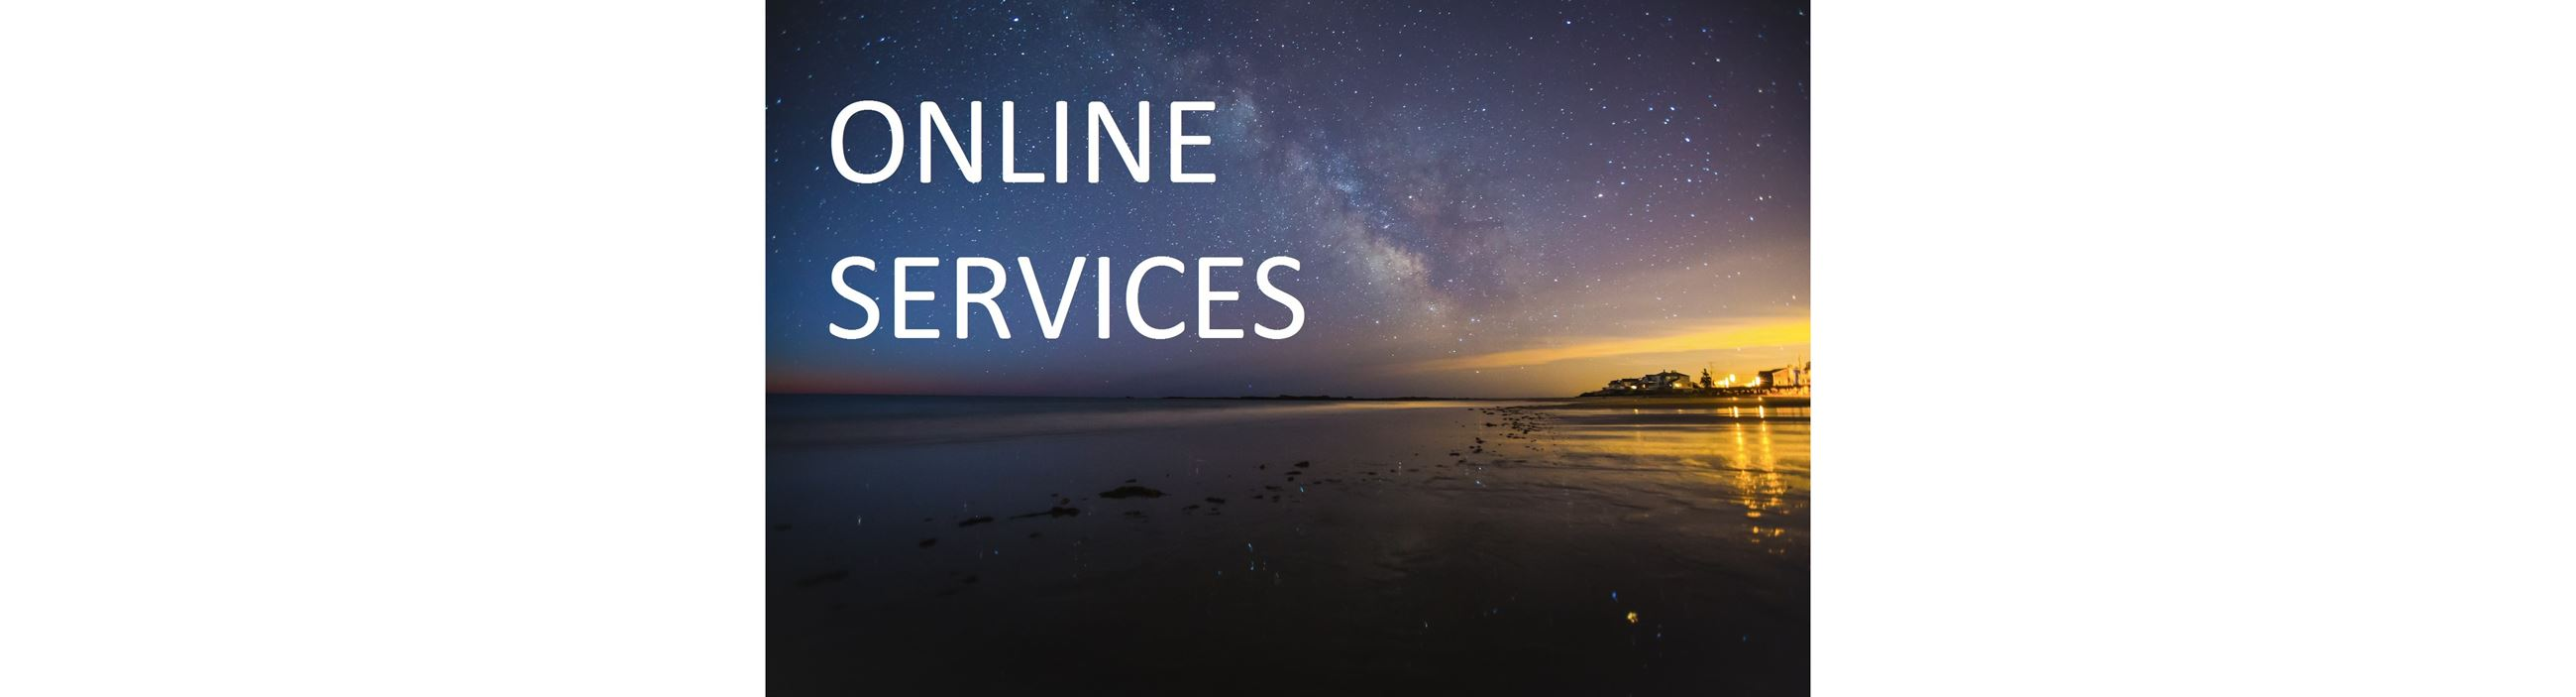 online services widest